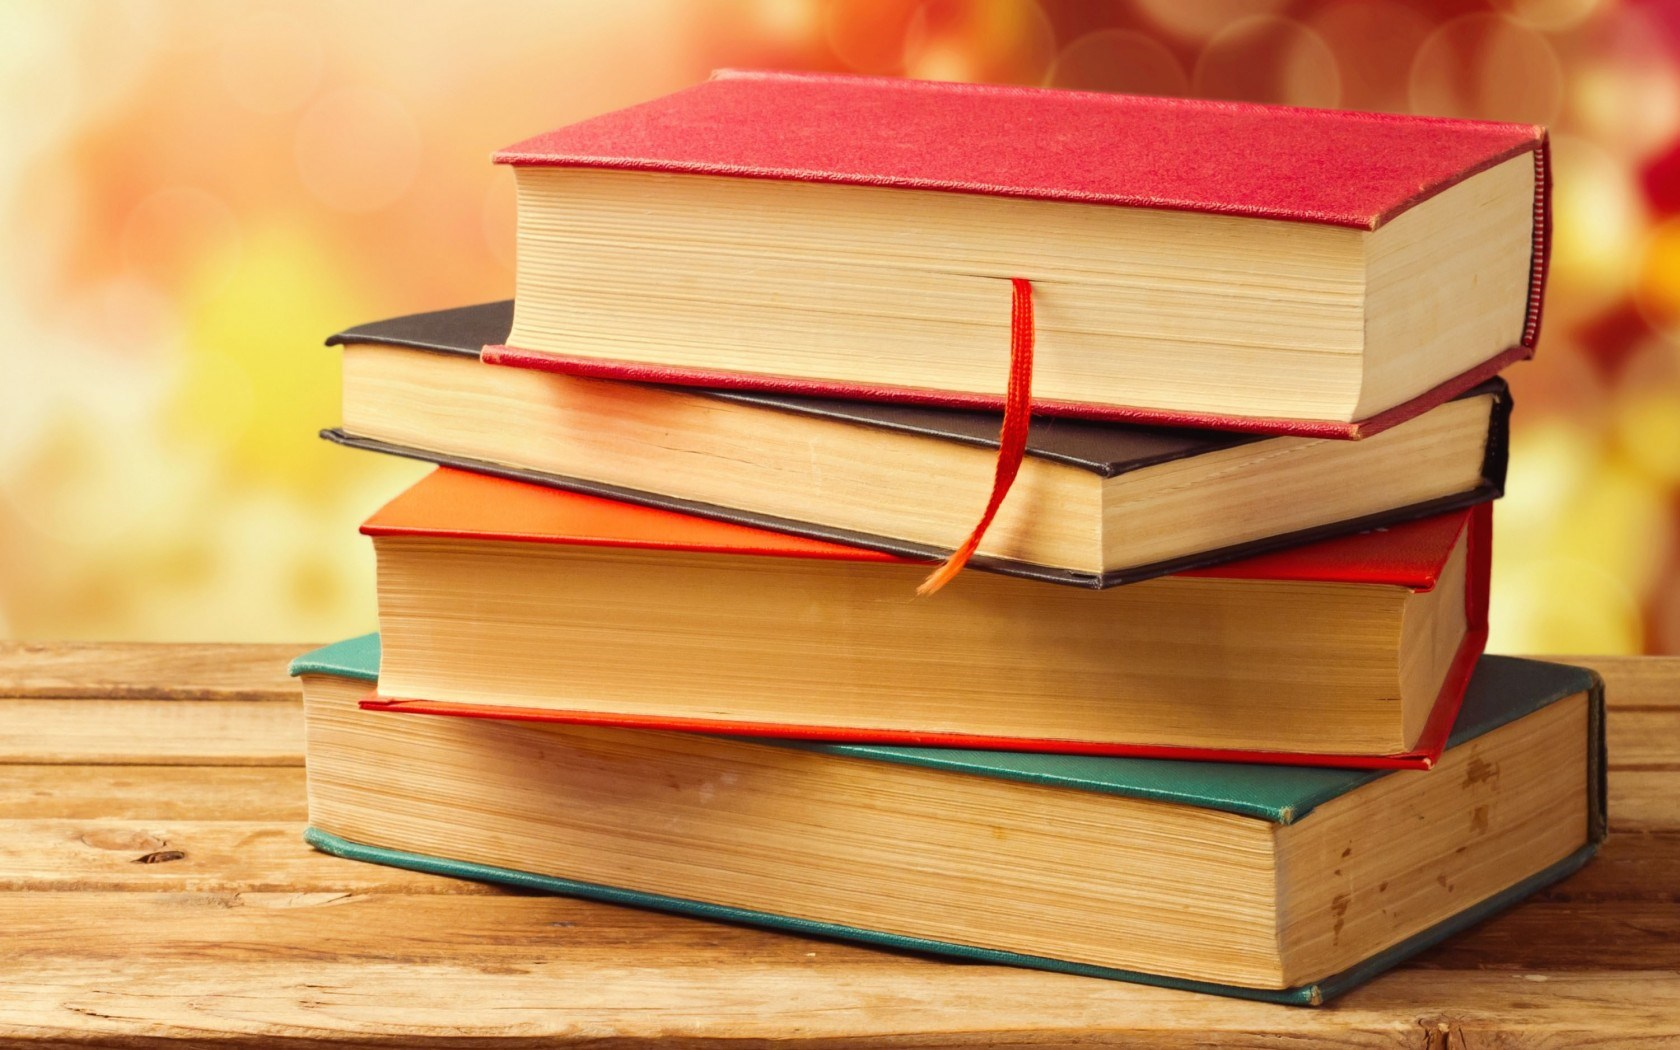 Nice Images Collection: Book Desktop Wallpapers